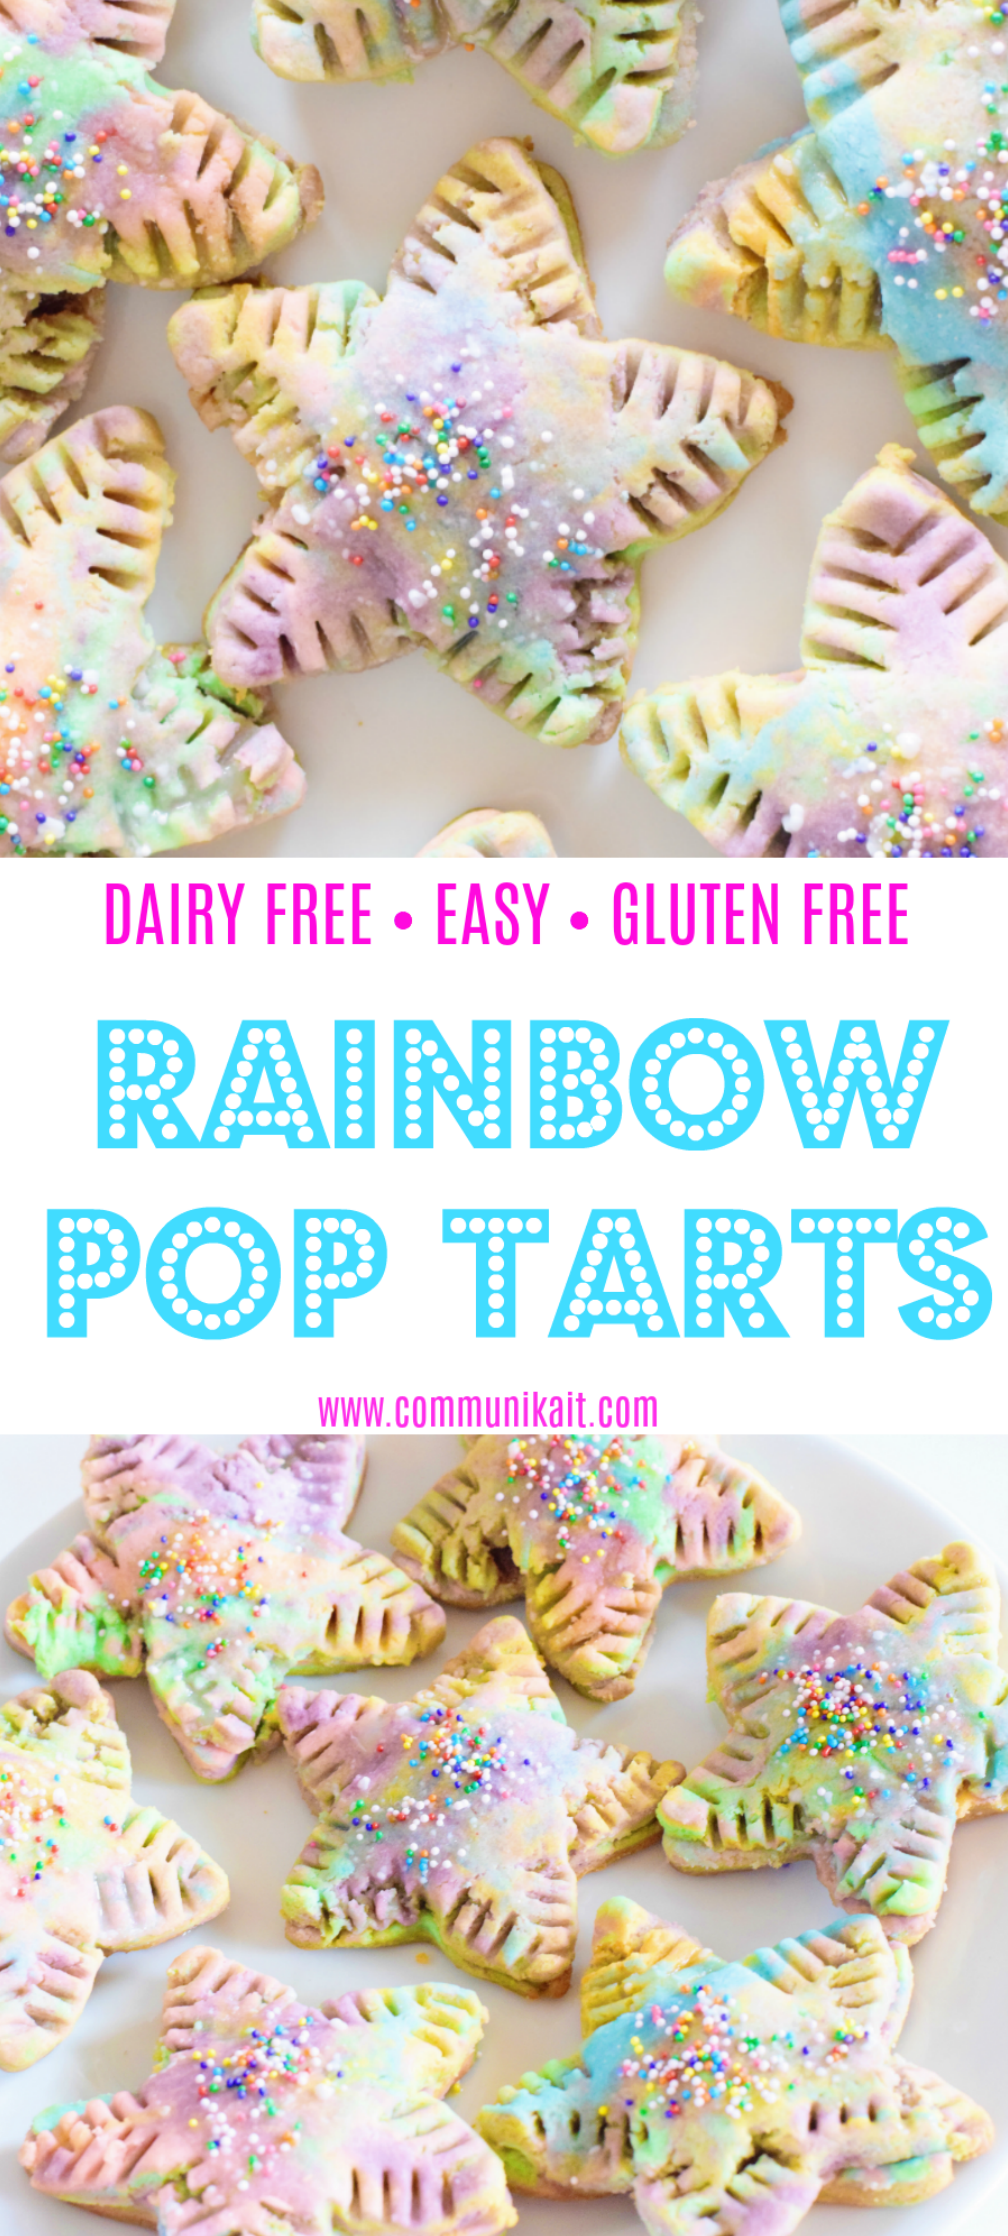 Vitamix Rainbow Pop Tarts - Gluten and dairy free rainbow pop tarts made entirely in your Vitamix - too good not to try! - Homemade Pop Tarts - Easy Pop Tart Recipe - Unicorn Recipe - Rainbow Food - Communikait by Kait Hanson